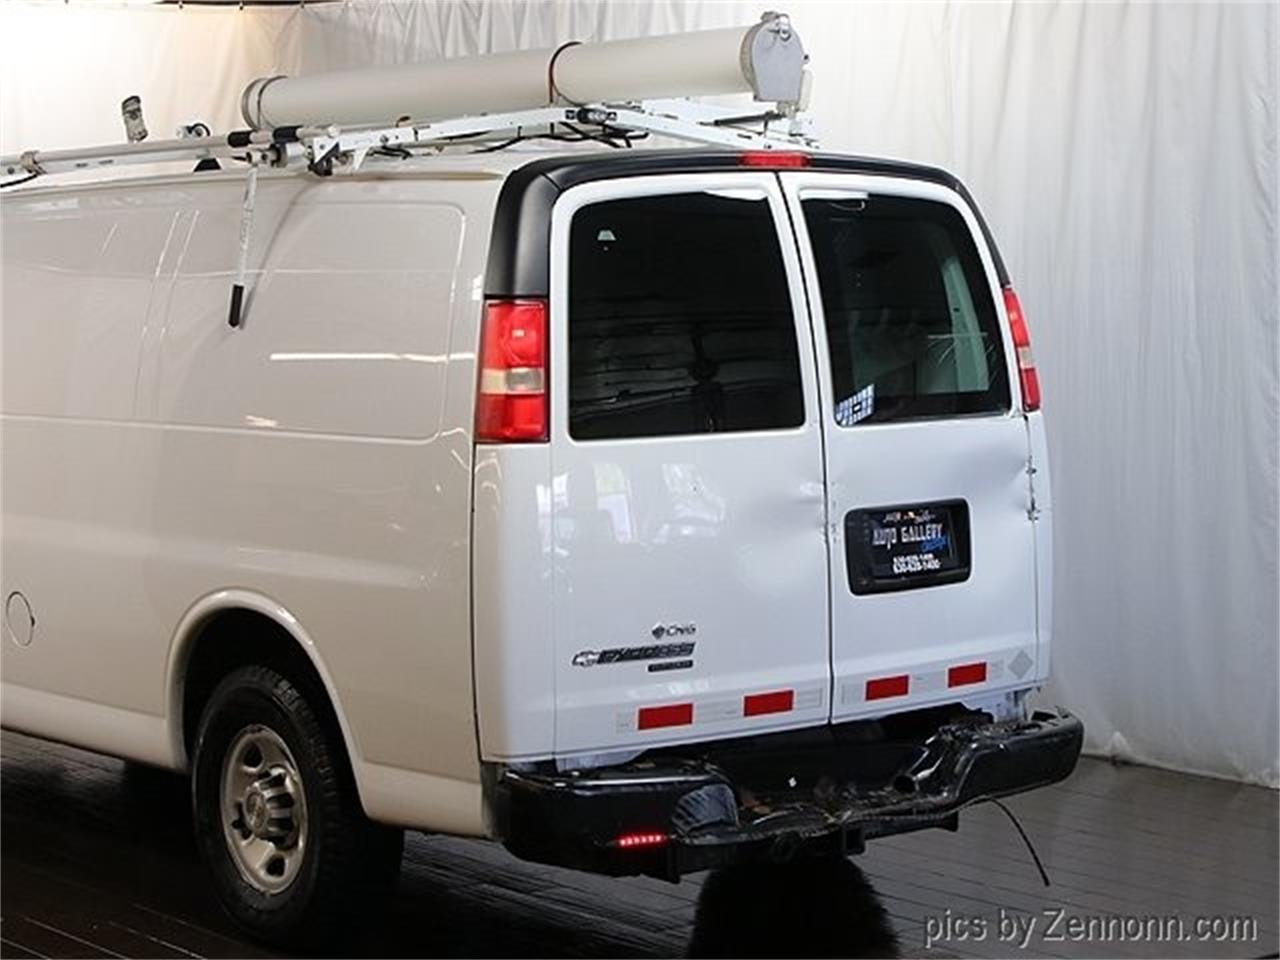 2012 Chevrolet Express (CC-1215123) for sale in Addison, Illinois